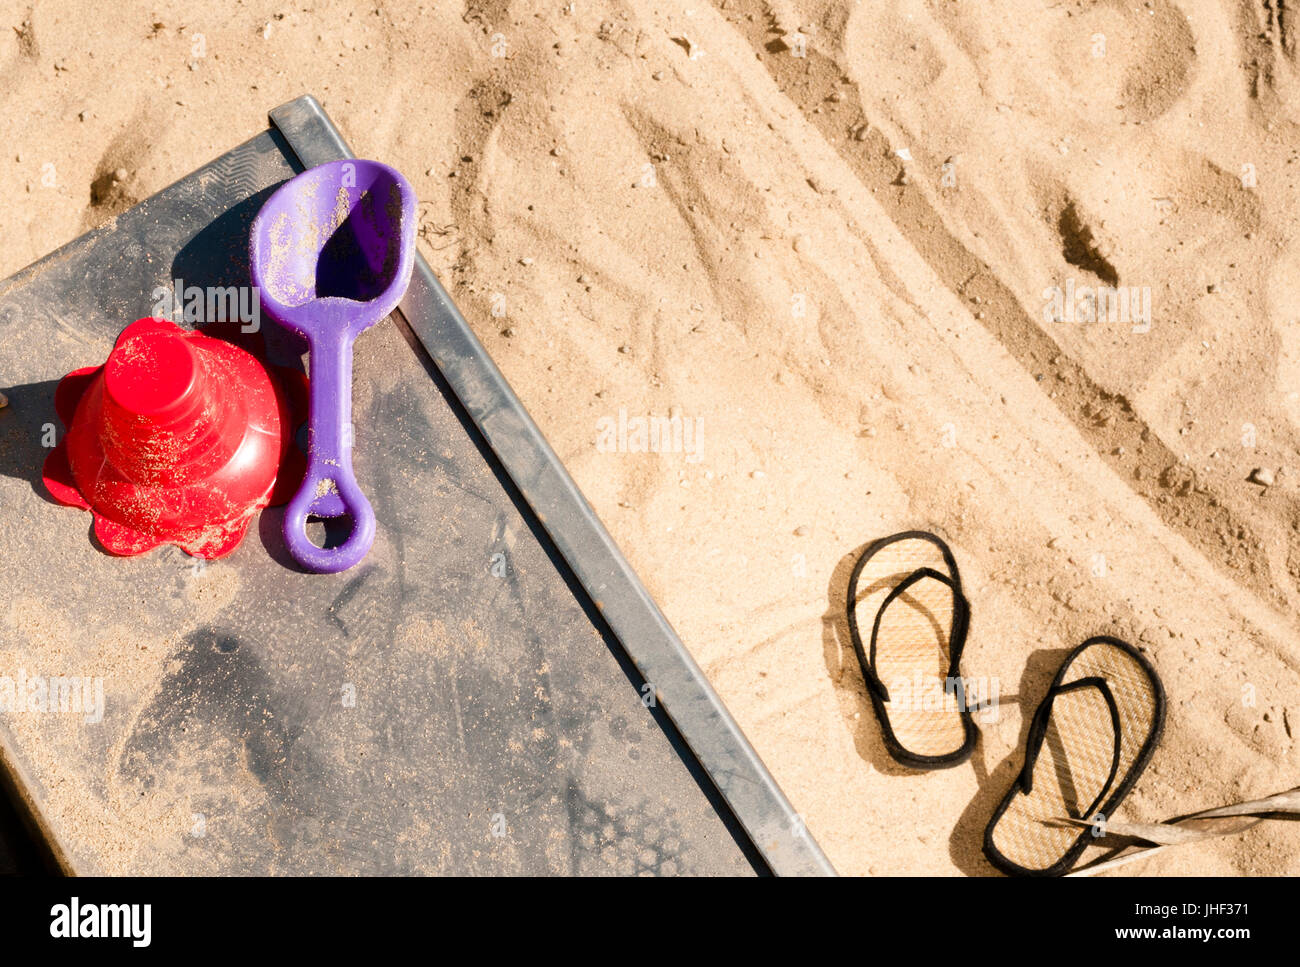 Toys left behind on a beach in Venice California USA - Stock Image